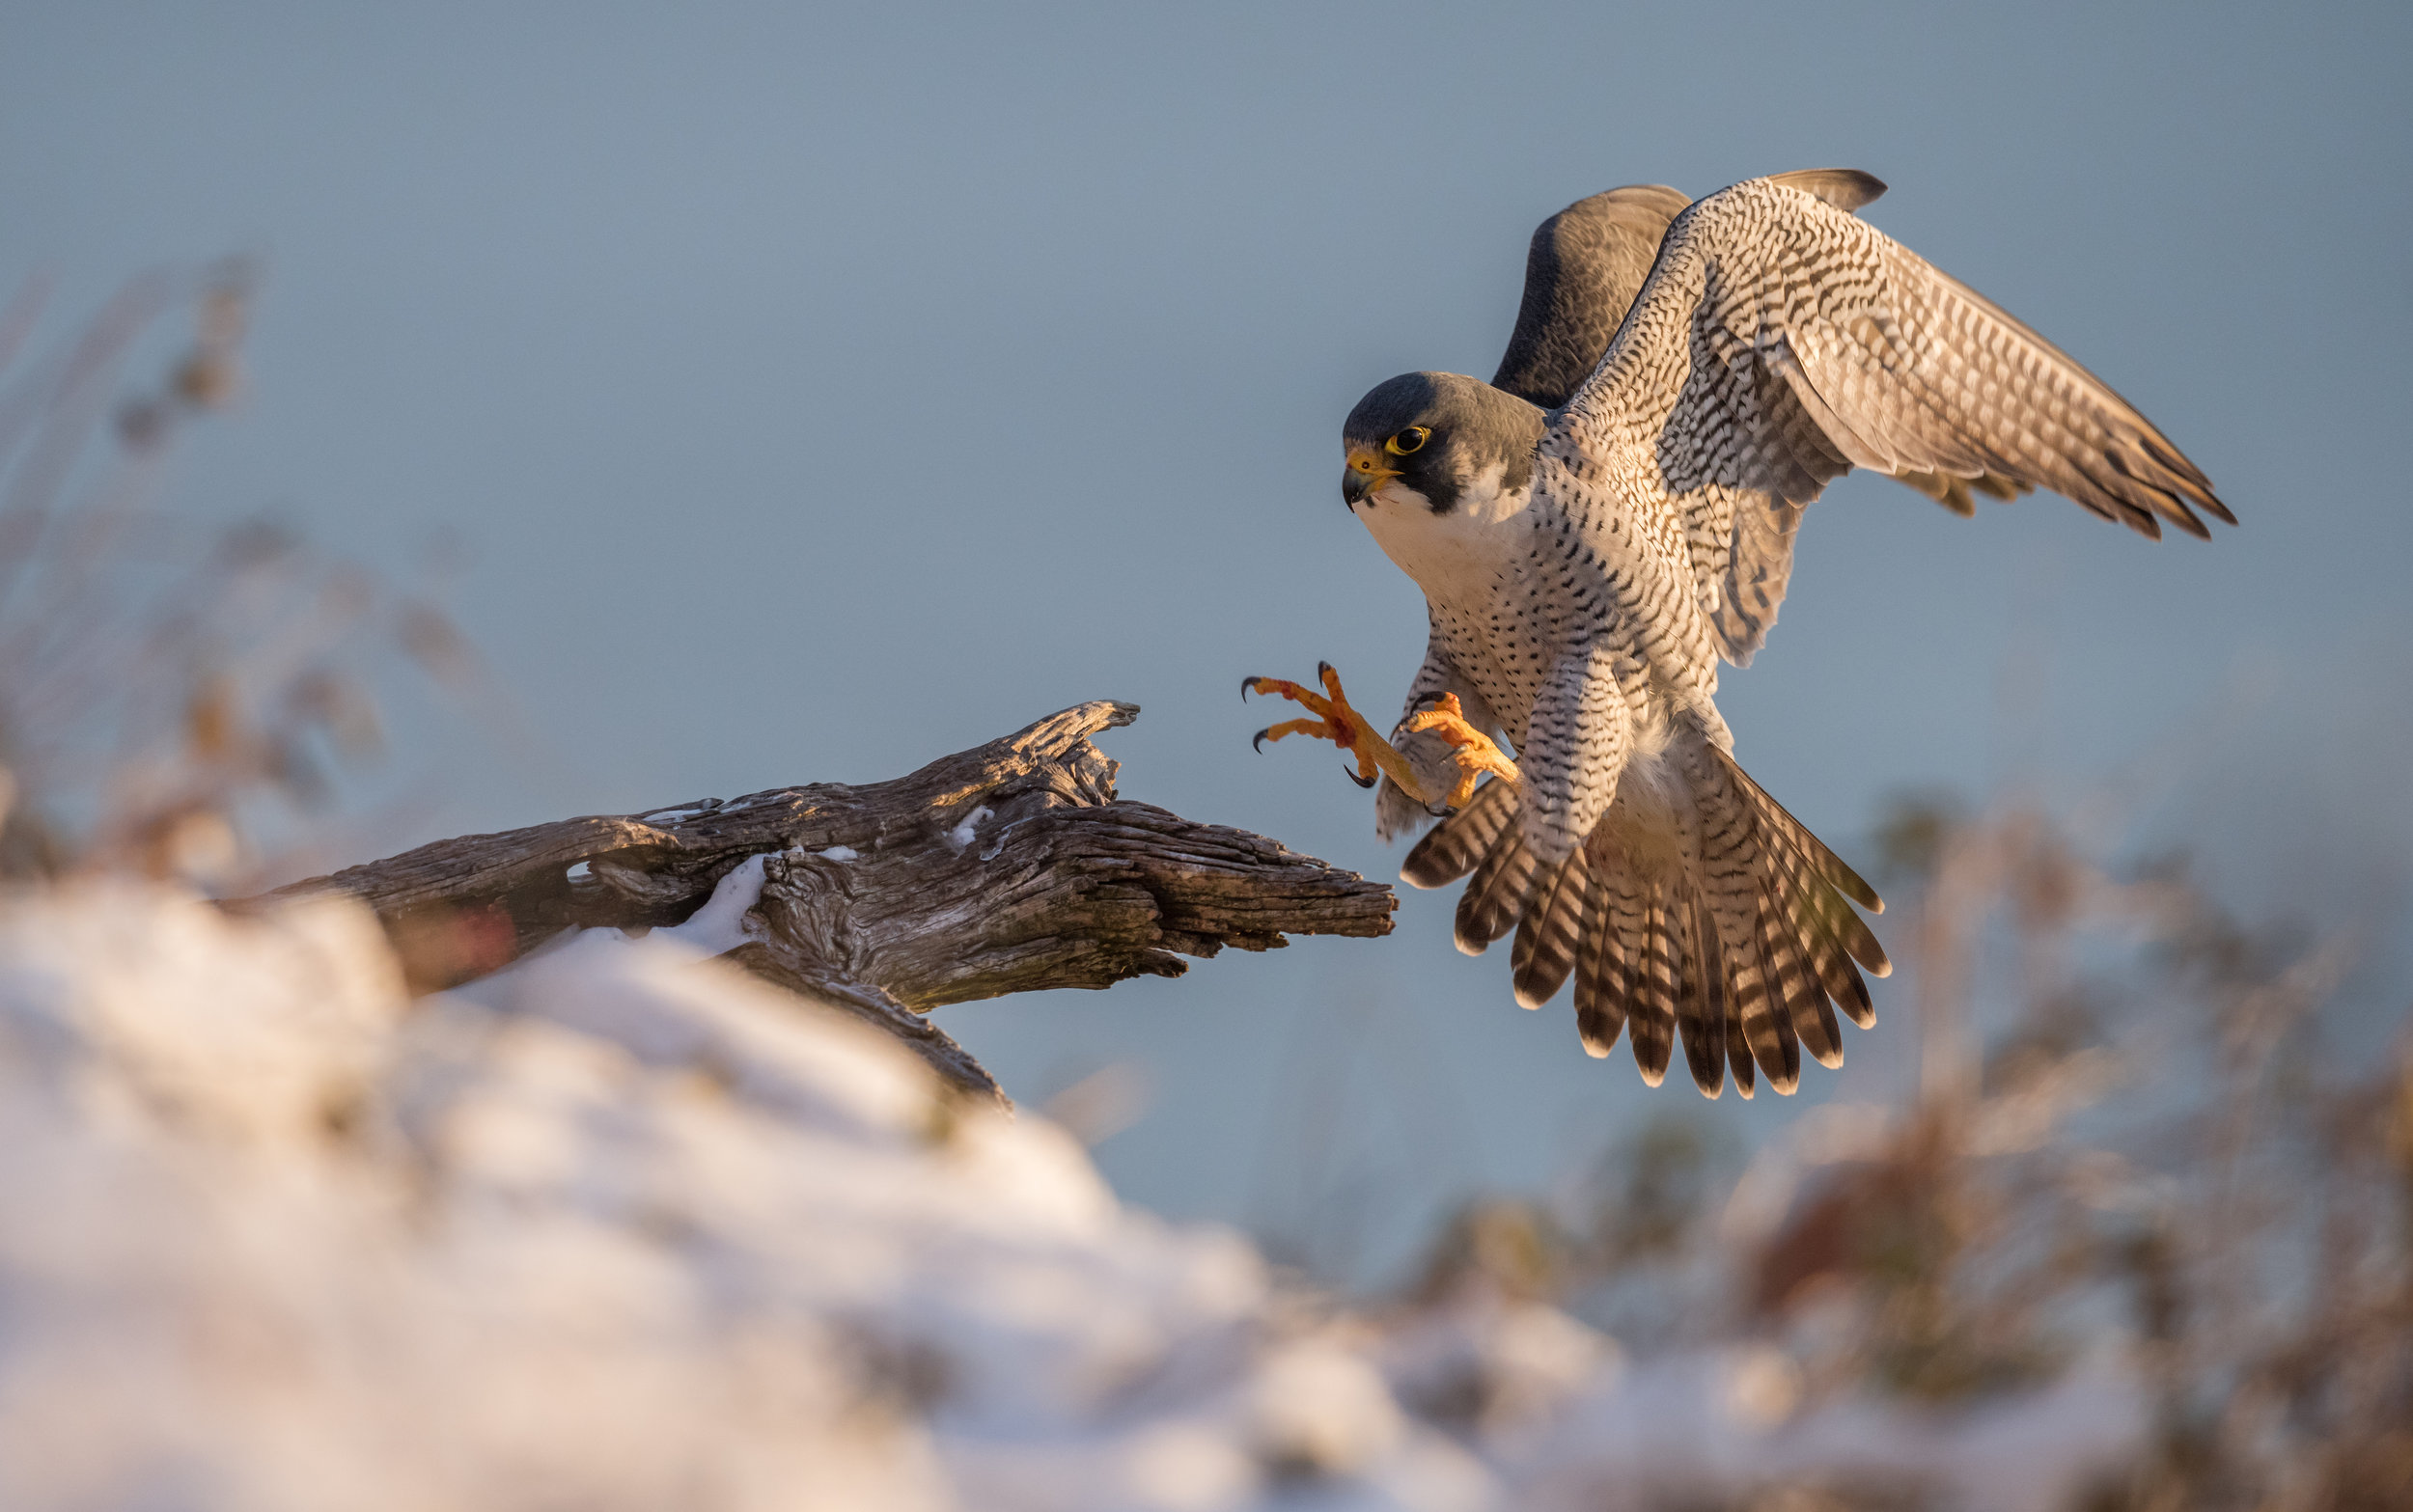 Peregrine Falcon - This image is of a peregrine falcon landing on snowy cold morning in New Jersey. The falcons at this location hang out on the cliffs at 500 feet above the Hudson River. Often when the falcons come in to land, they approach from underneath this branch which is not visible from the angle I took this photo. In order to get this one, I set my camera up on manual focus and pre focused on the end of the tree branch. Using a wireless remote I was able to stand 75-100 feet away from the camera where I had a clear view of the falcon's flight path. Once the bird was close to landing I simply hit the remote shutter and the rest is history. Camera settings: Nikon D800e & 600mm f4 VR lens: Manual Mode:1/1600, f5.6, ISO 1600.